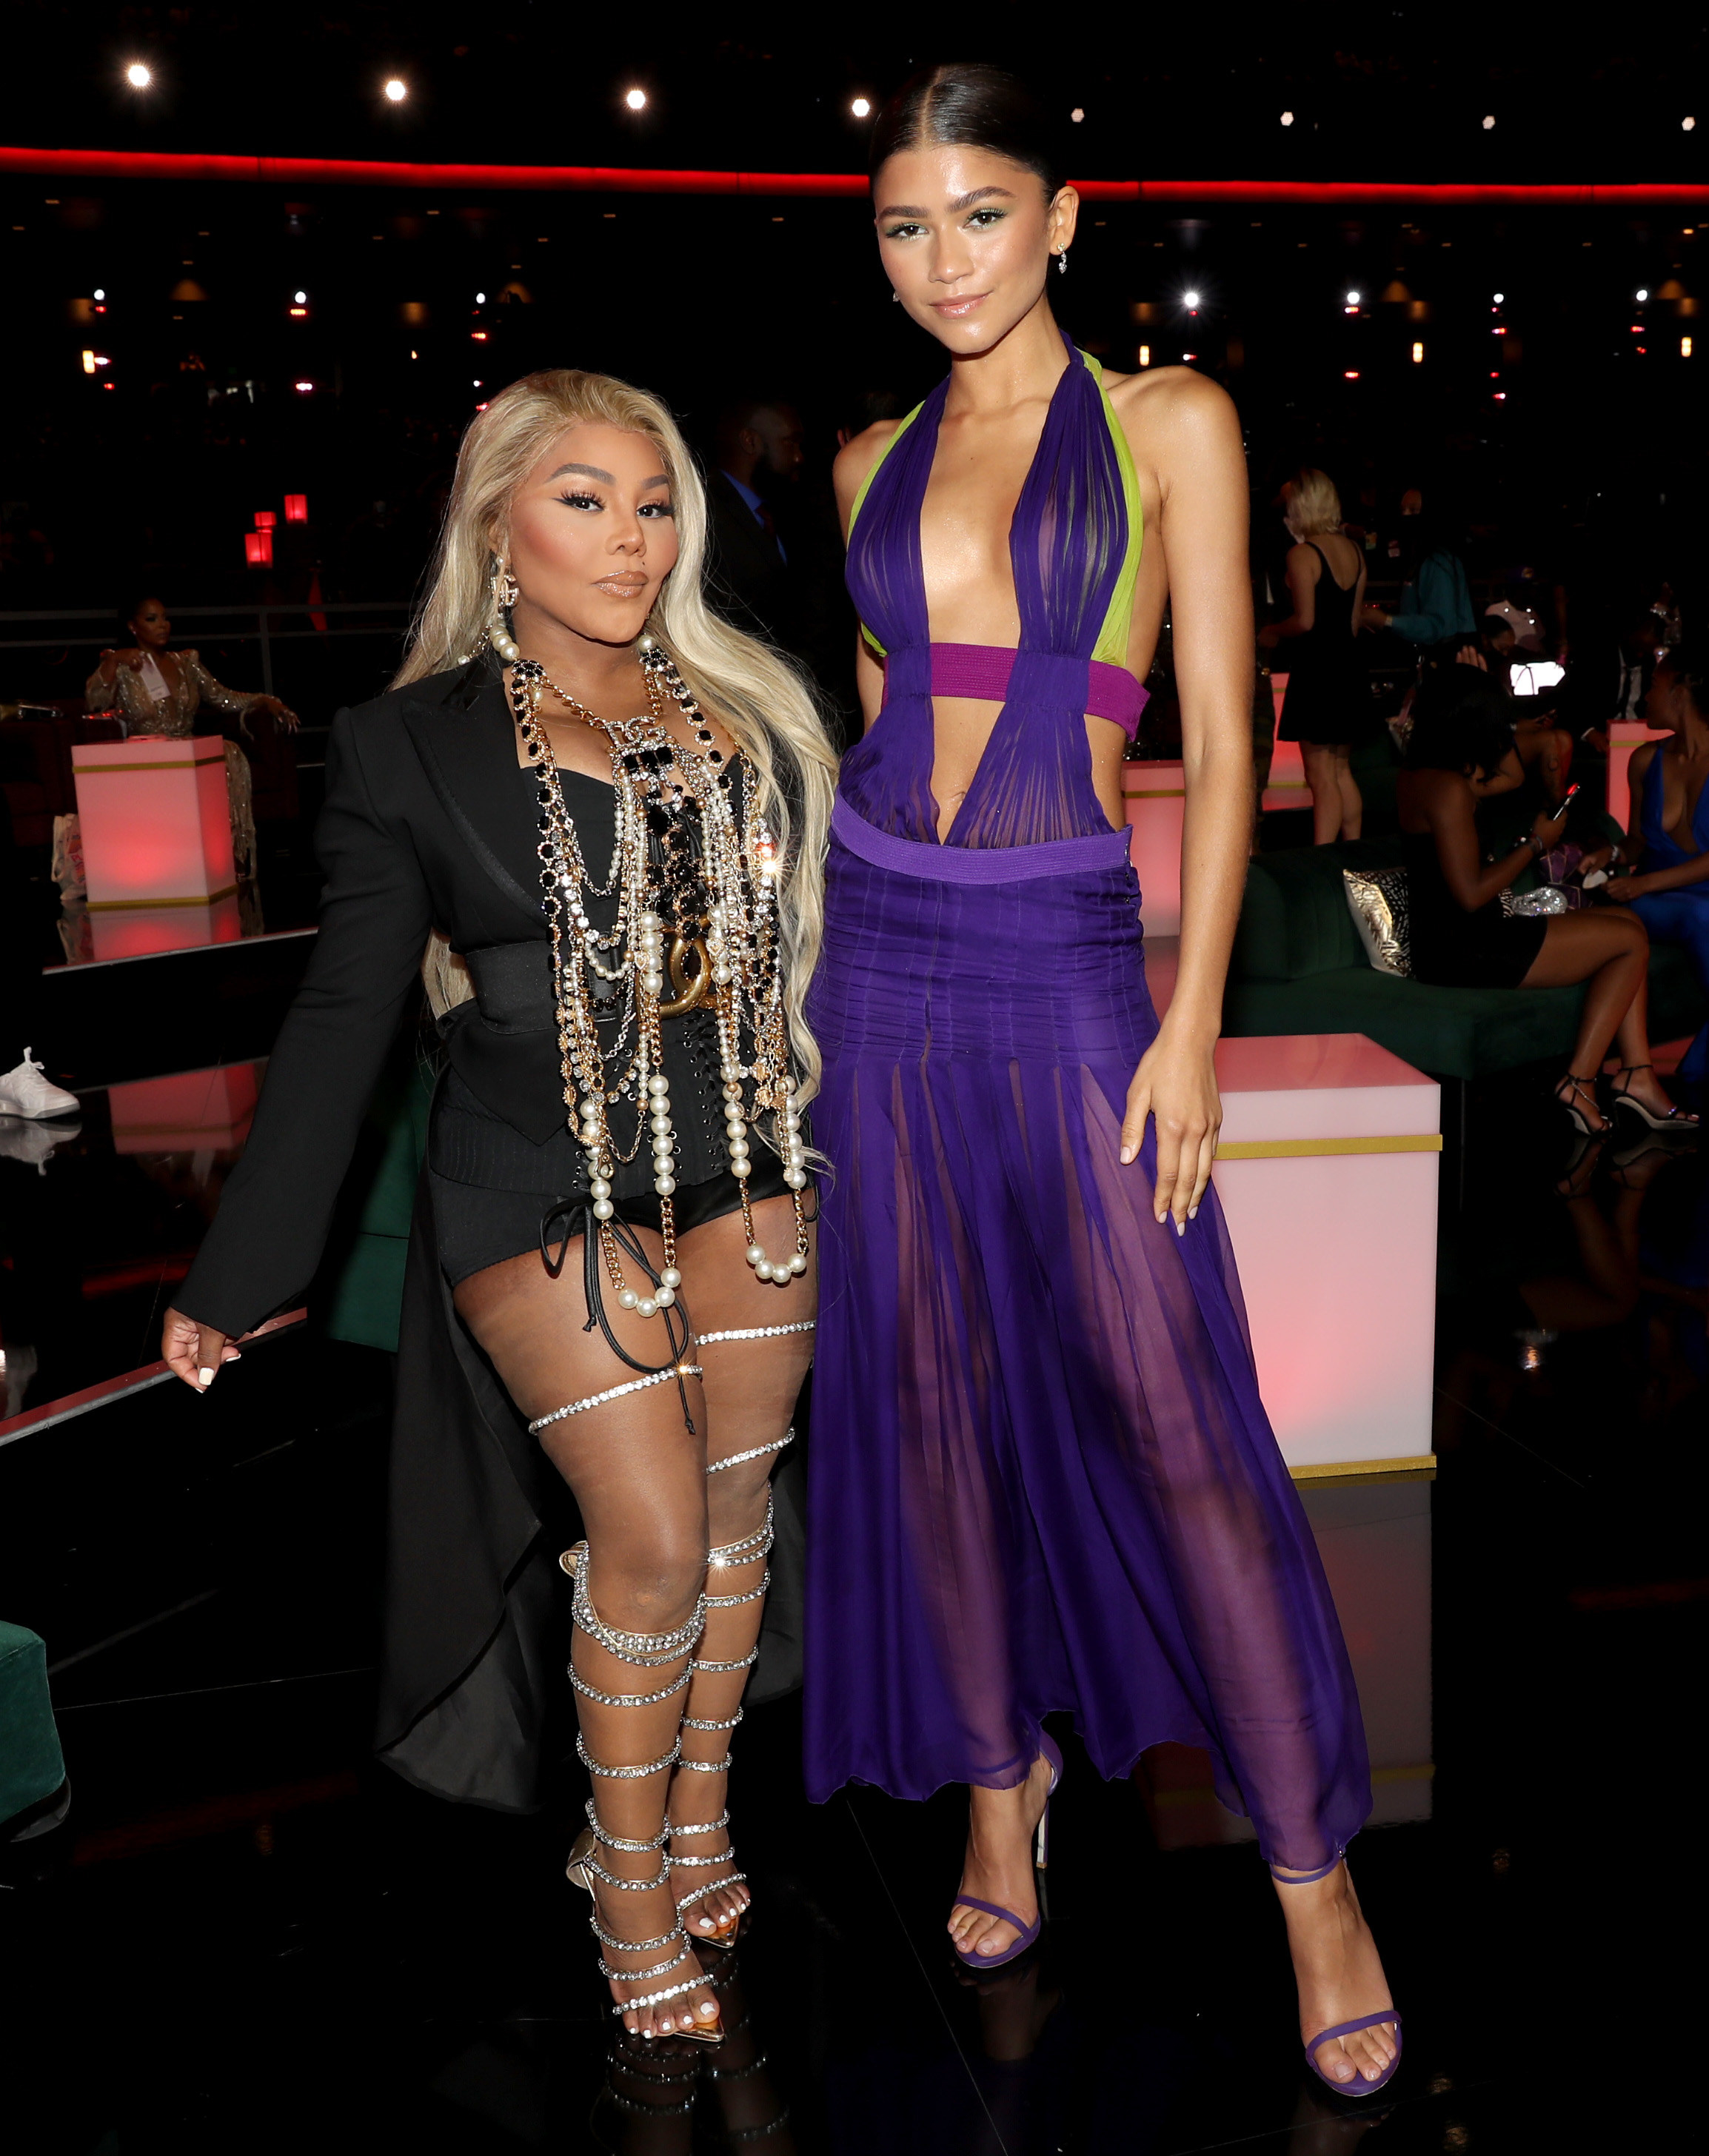 Lil' Kim and Zendaya (in the purrple dress) attend the BET Awards 2021 at Microsoft Theater on June 27, 2021 in Los Angeles, California